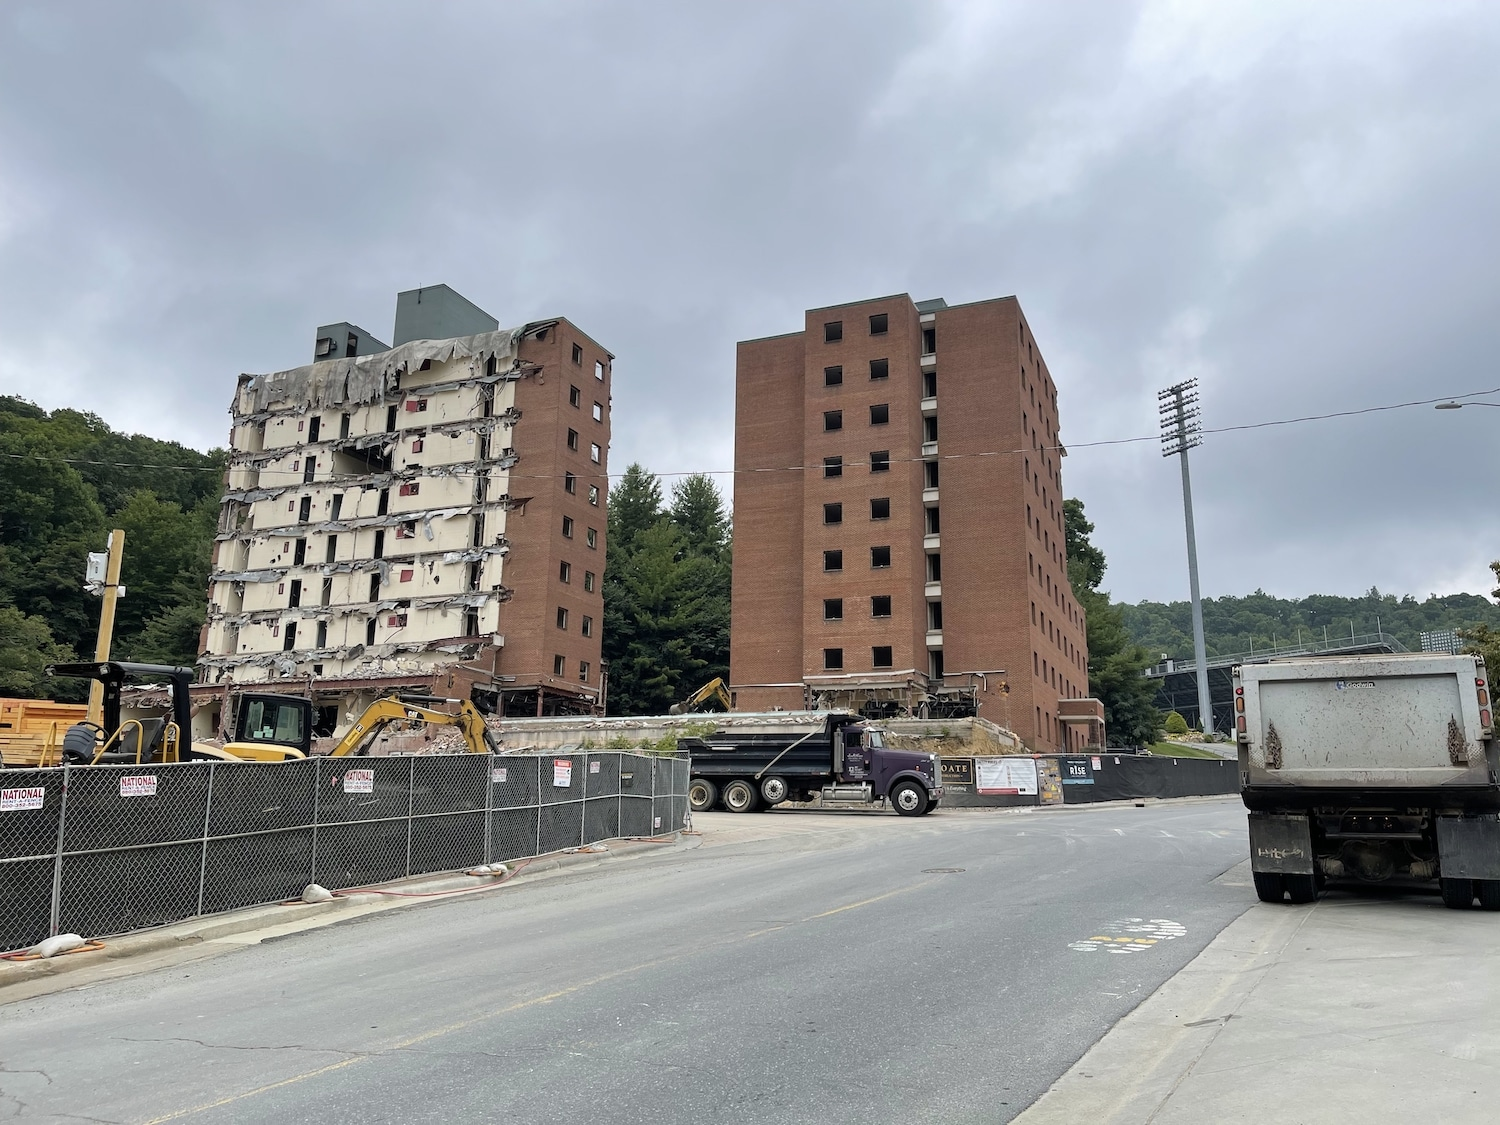 Sights and Sounds on App State campus - August 3, 2021